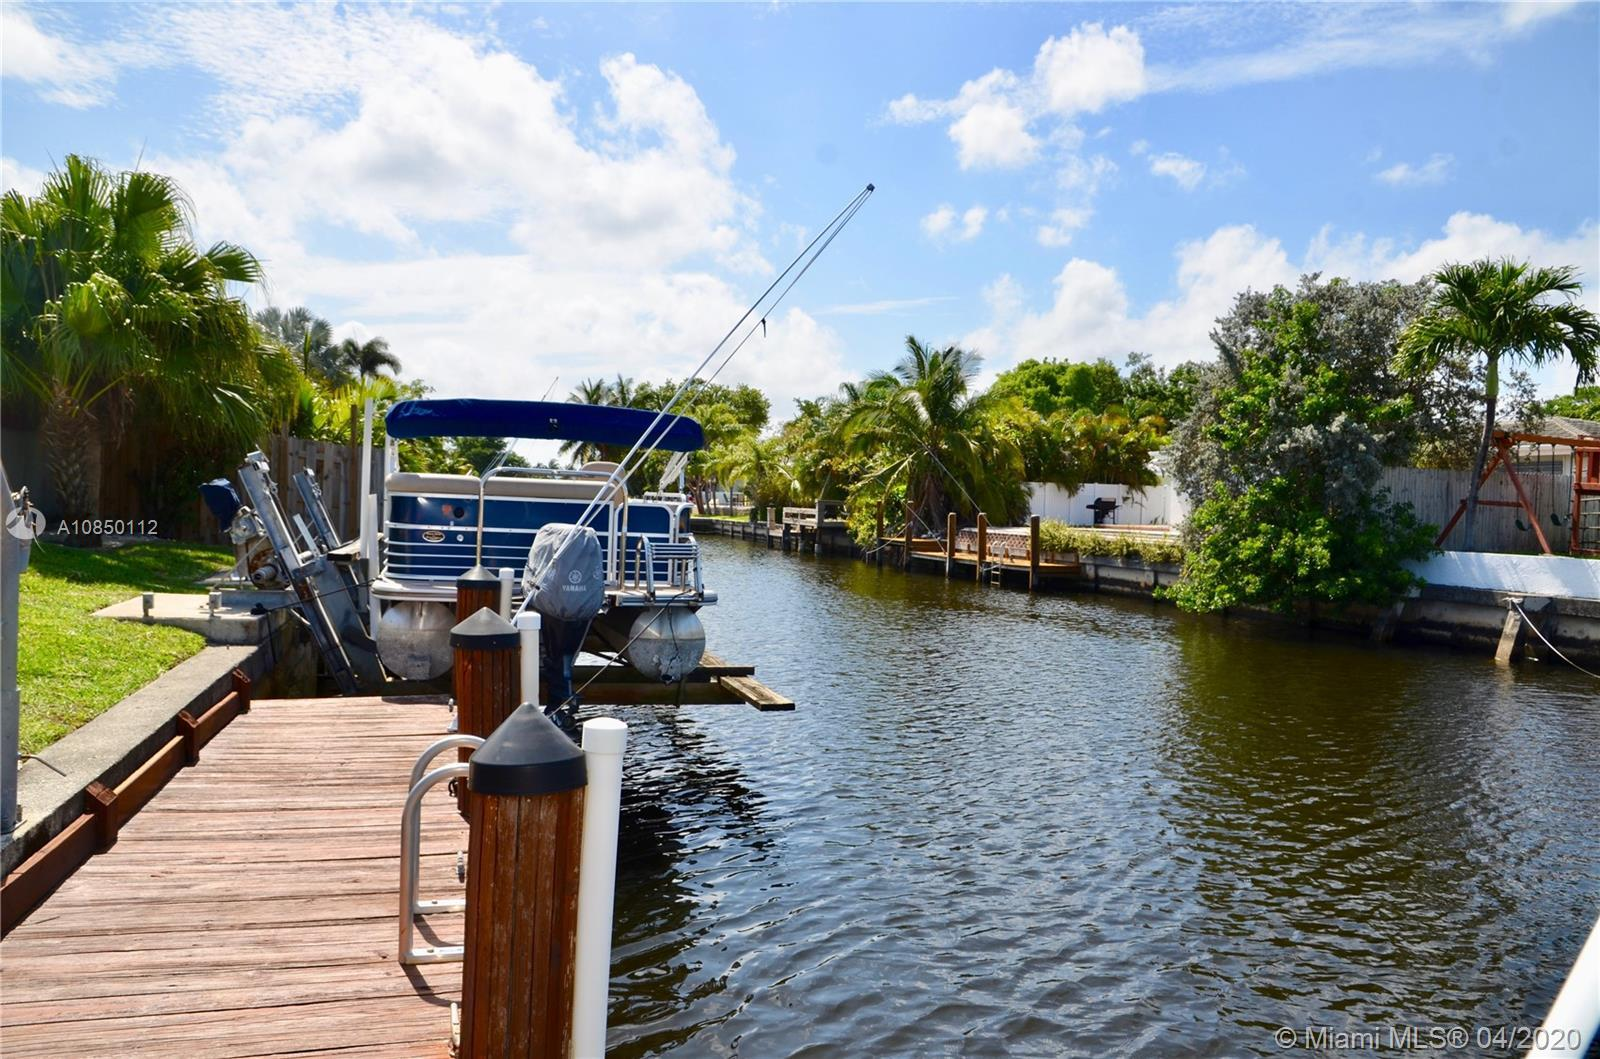 New on the market, a boaters dream house in Fort Lauderdale's Waterways! This 4 bedroom, 2 bathrooms